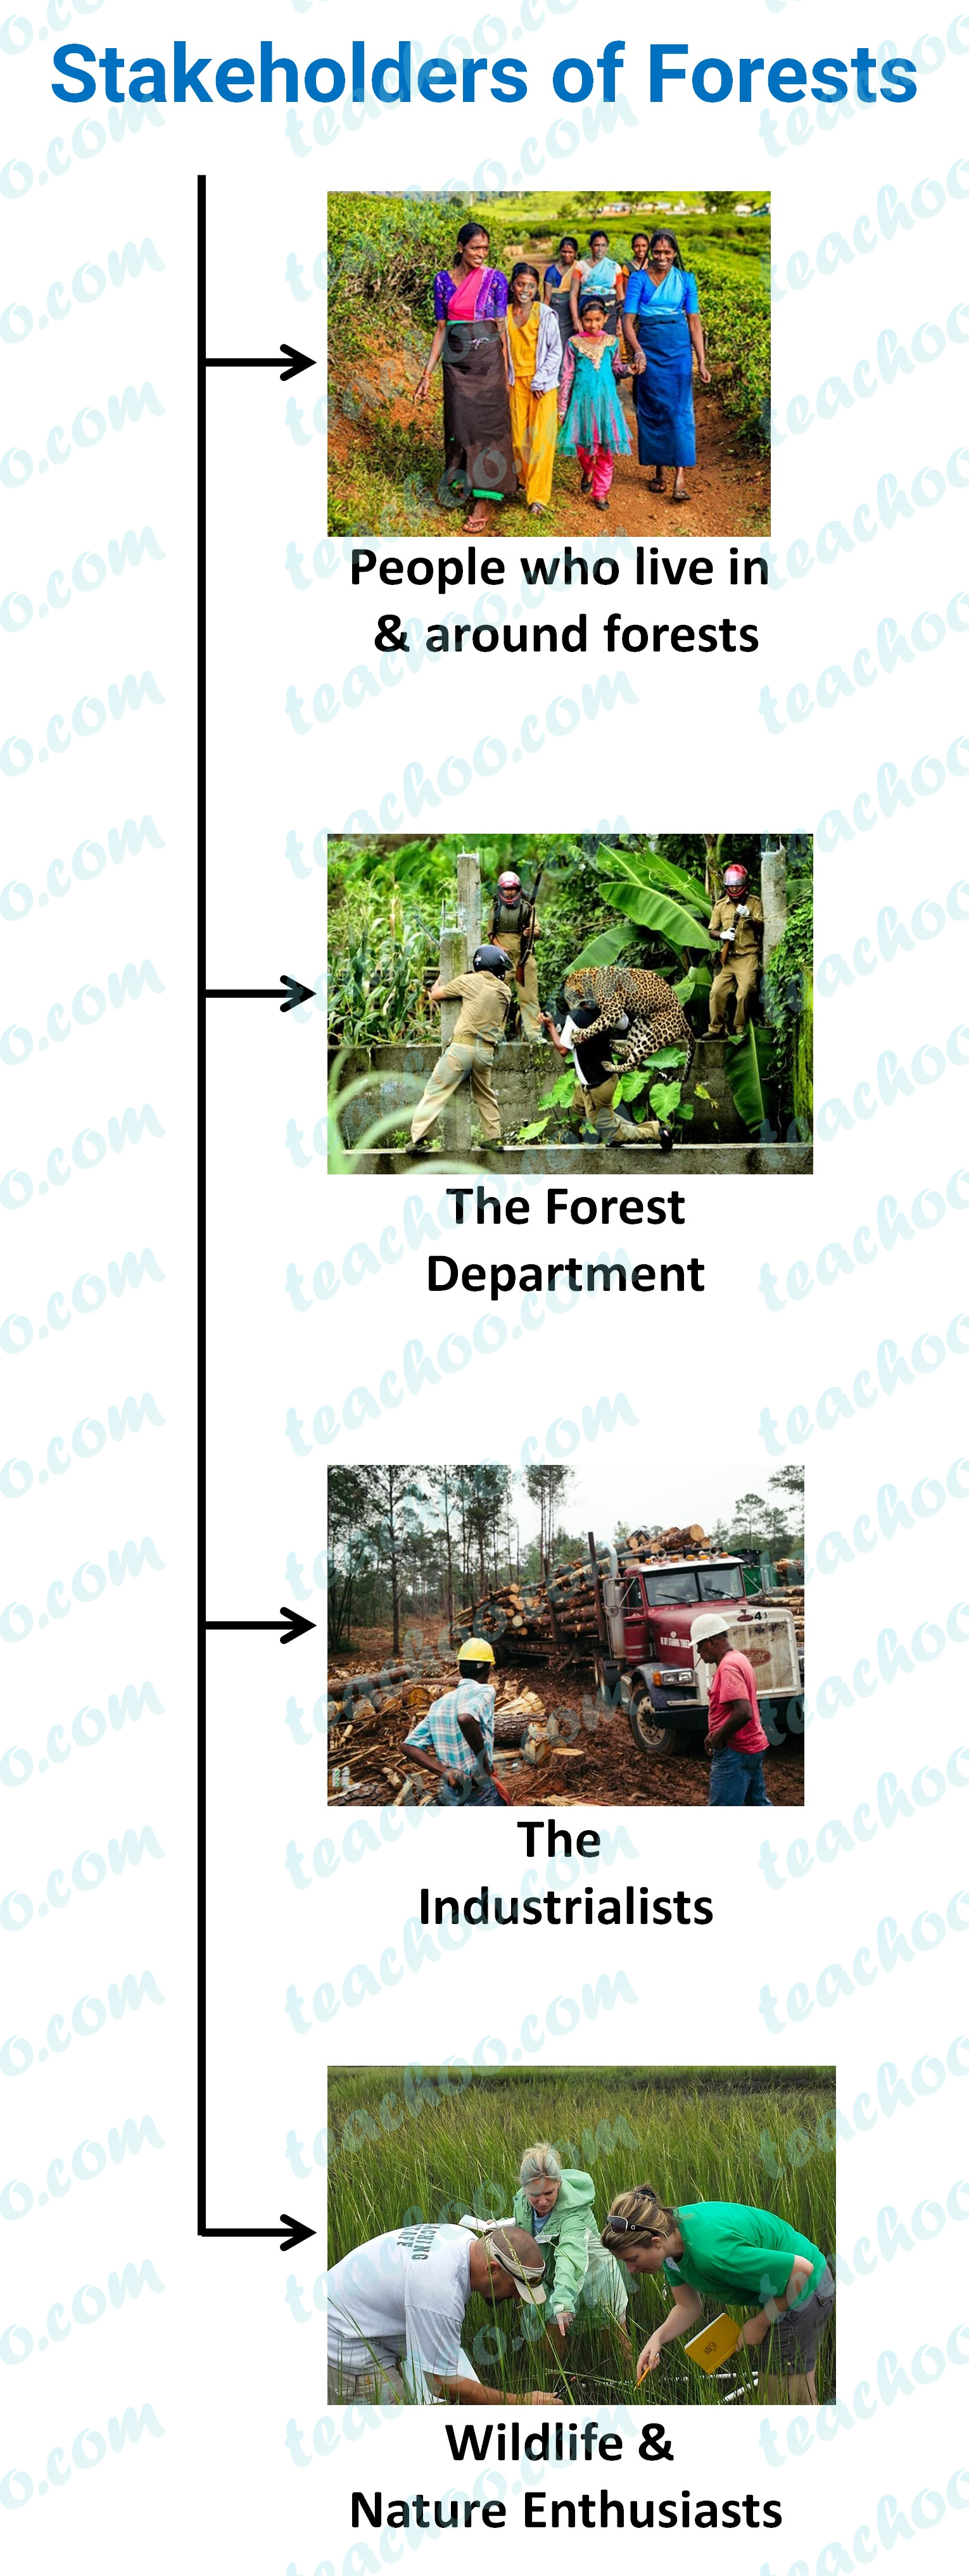 stakeholders-of-forests---teachoo.jpg